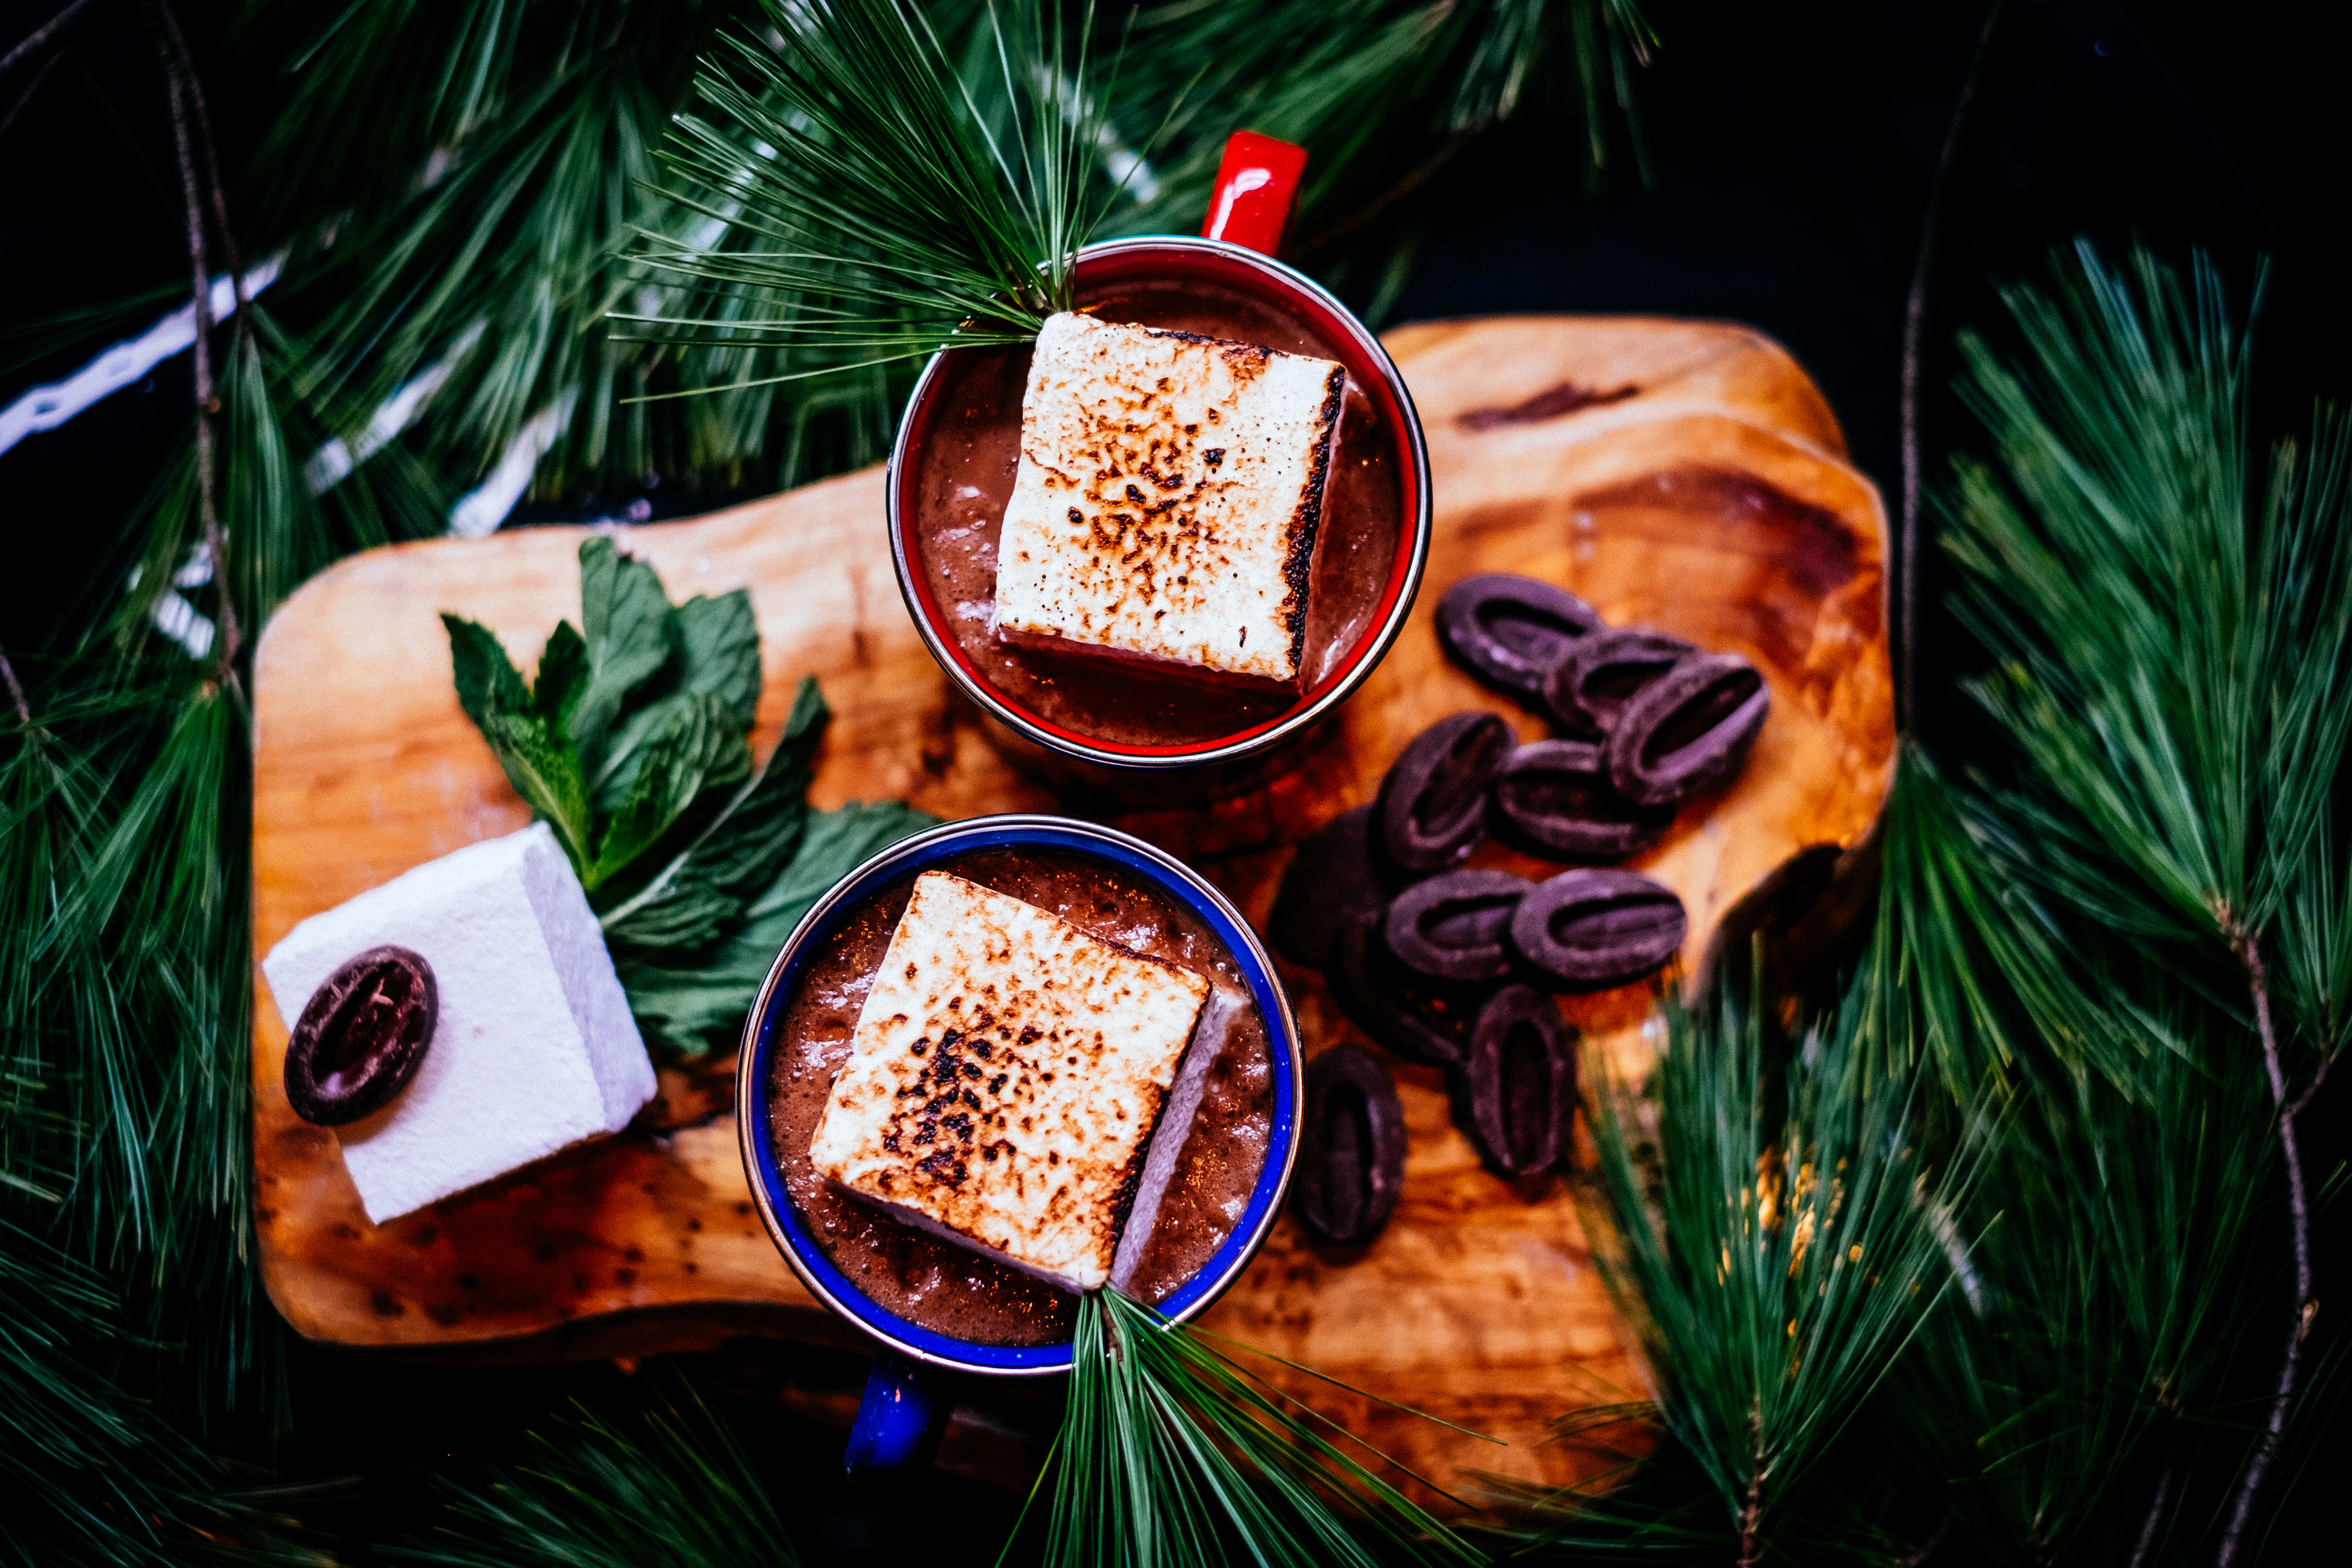 The most festive holiday drinks NYC has to offer